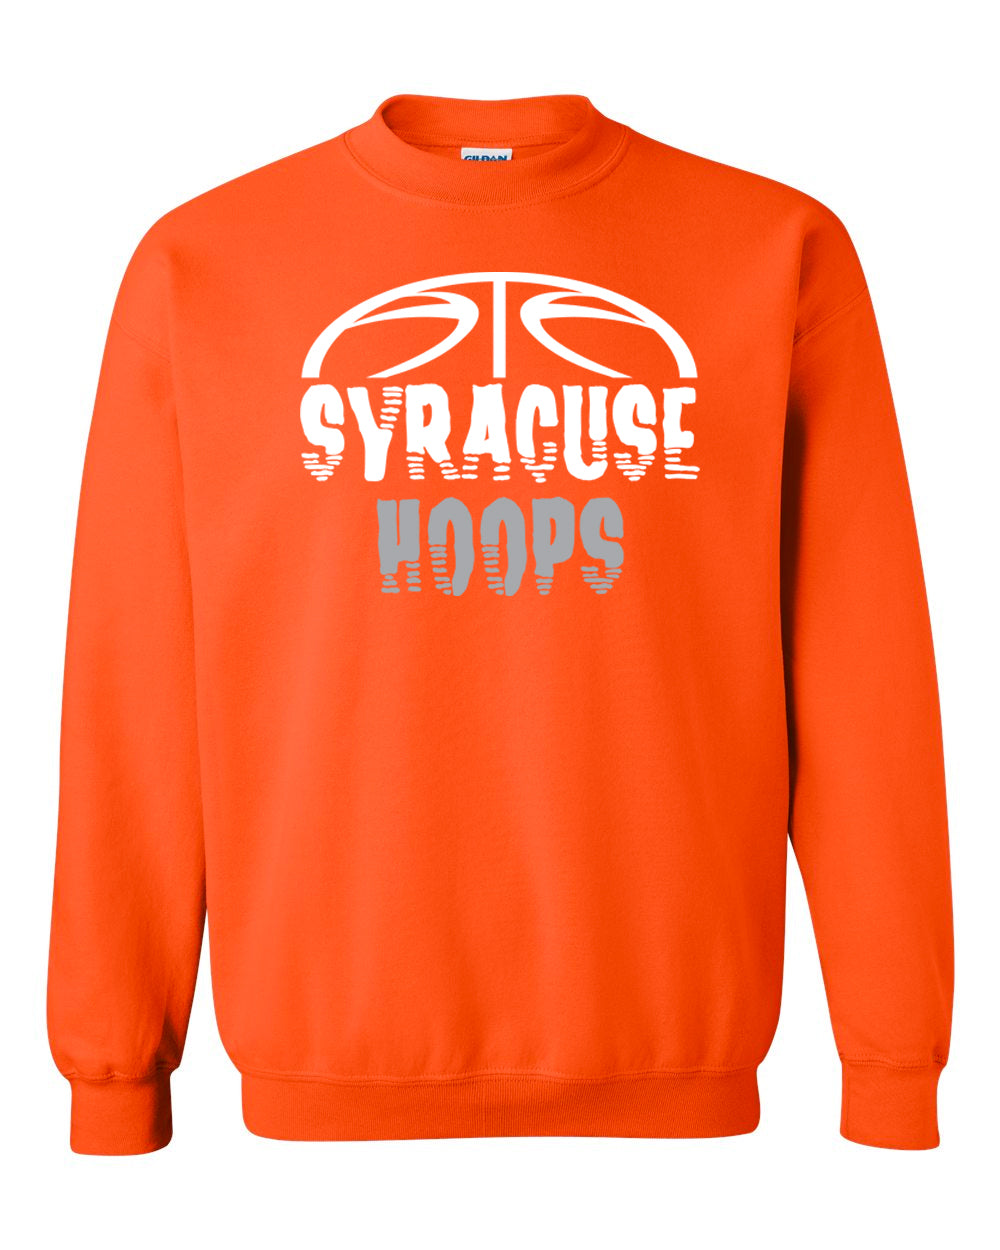 Hoops Orange Crewneck Sweatshirt